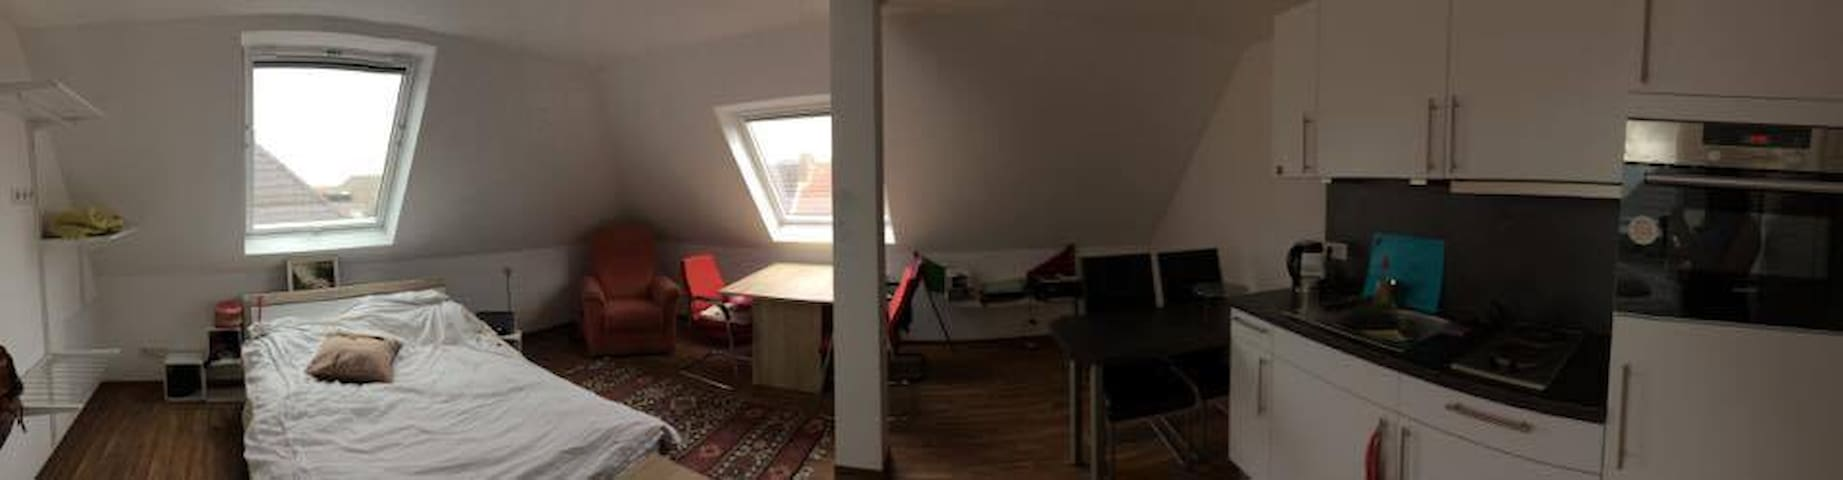 Studio Apartment in Kleve - Kleve